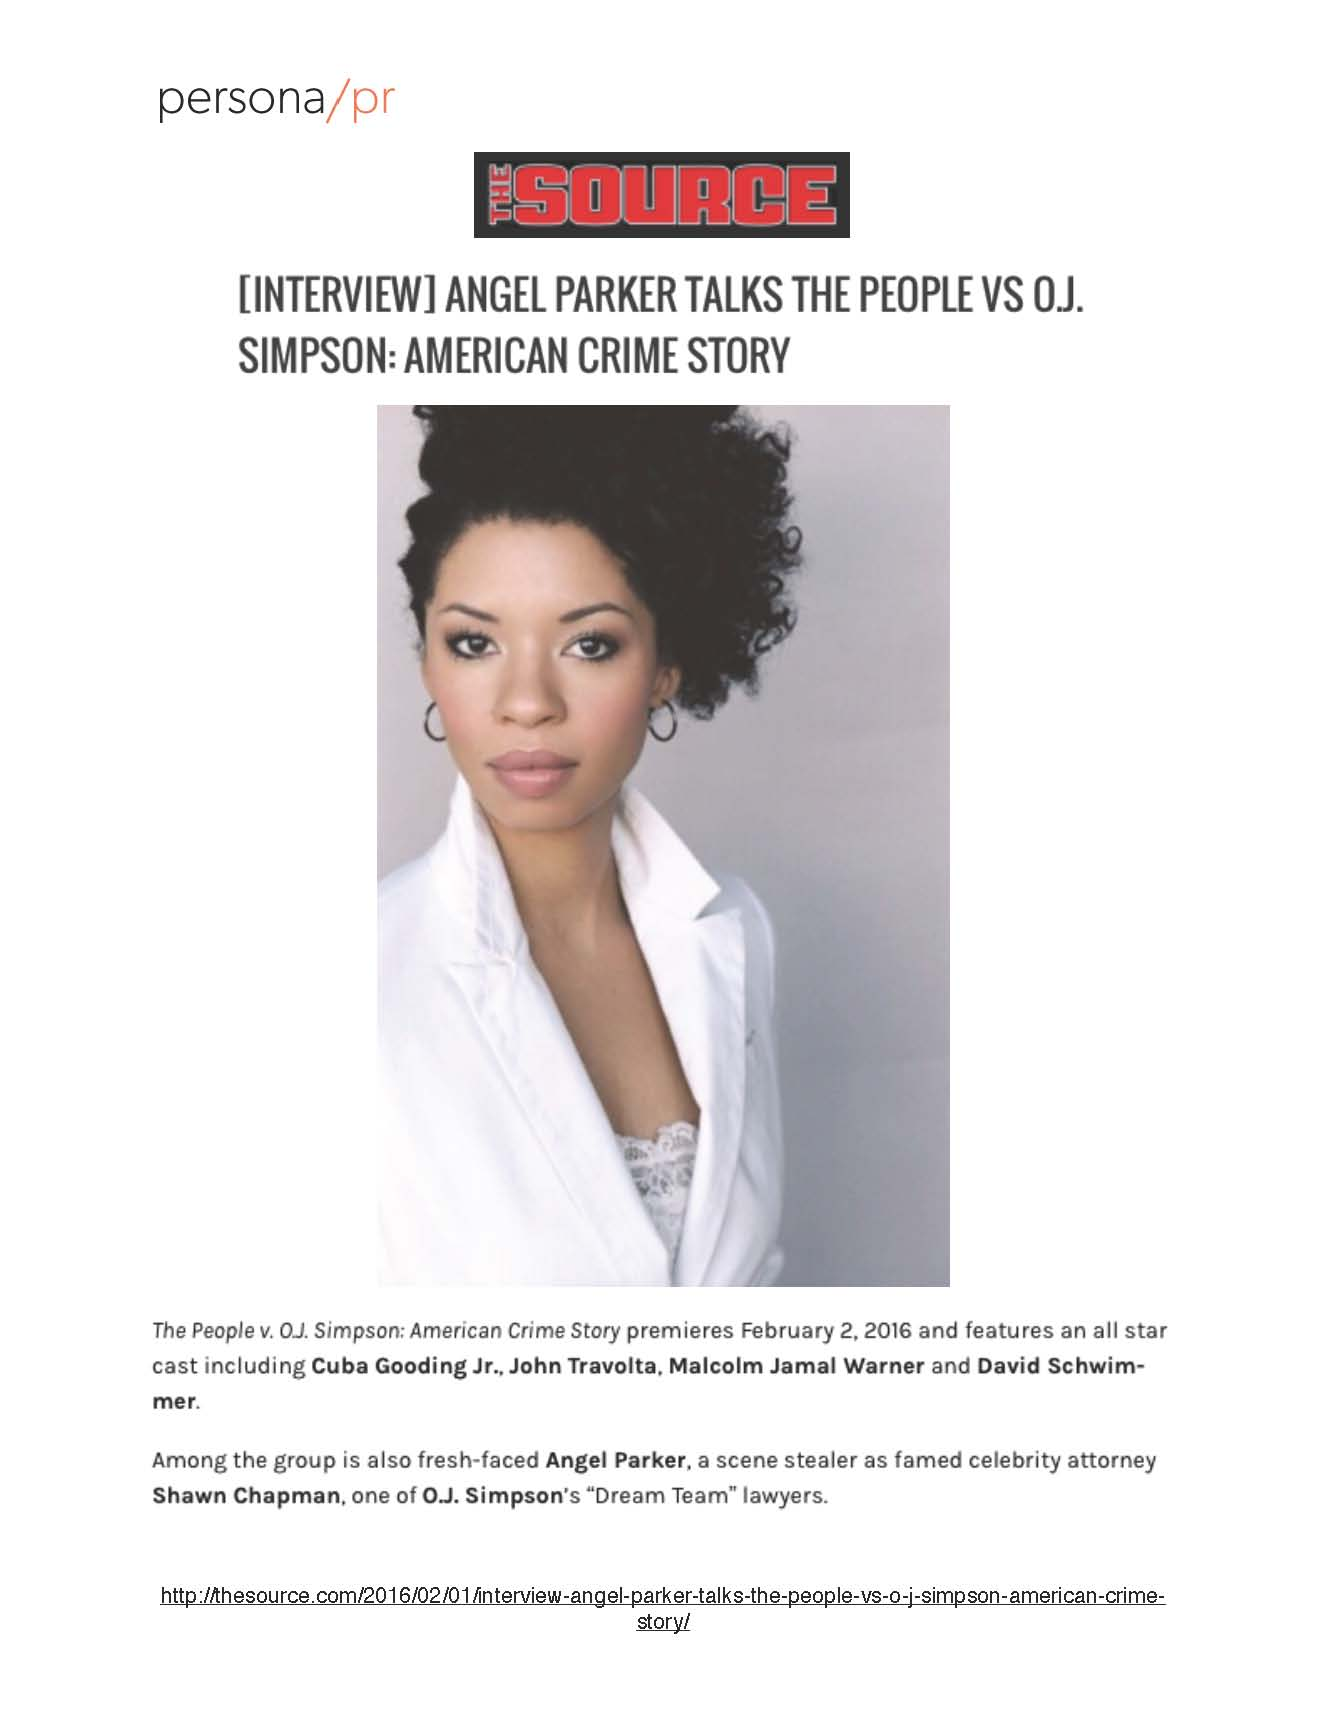 AngelParker-TheSource-02.01.16_Page_1.jpg